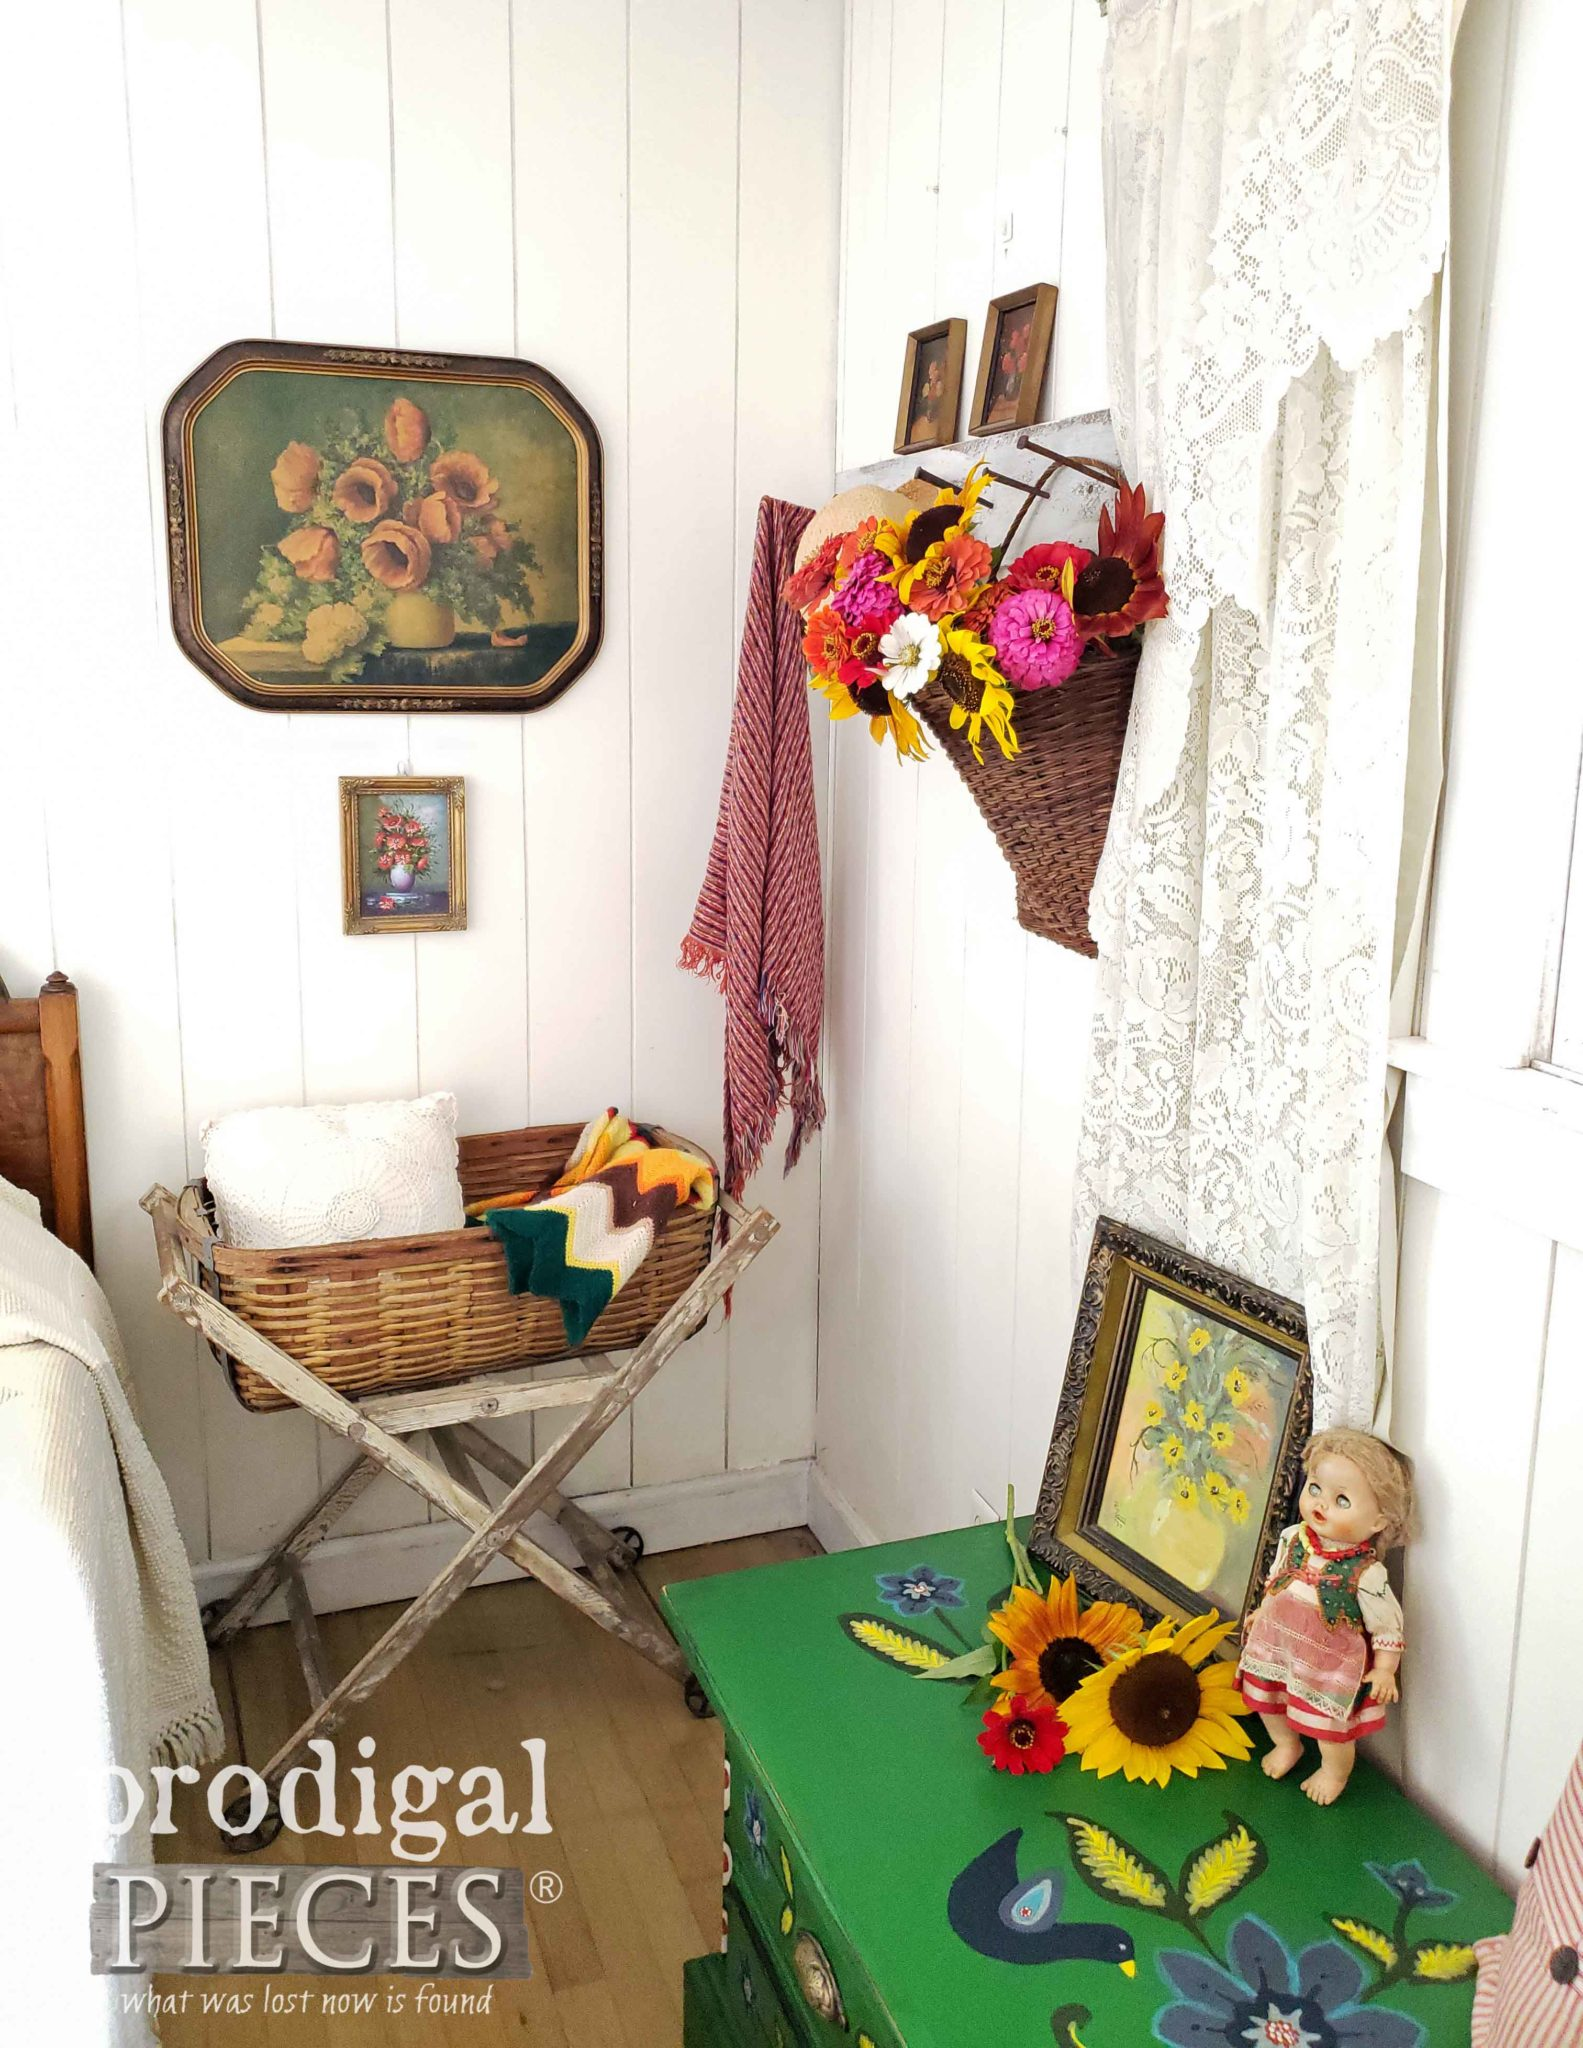 Vintage Style Bedroom with Loads of Color and Folk Art Charm by Larissa of Prodigal Pieces | prodigalpieces.com